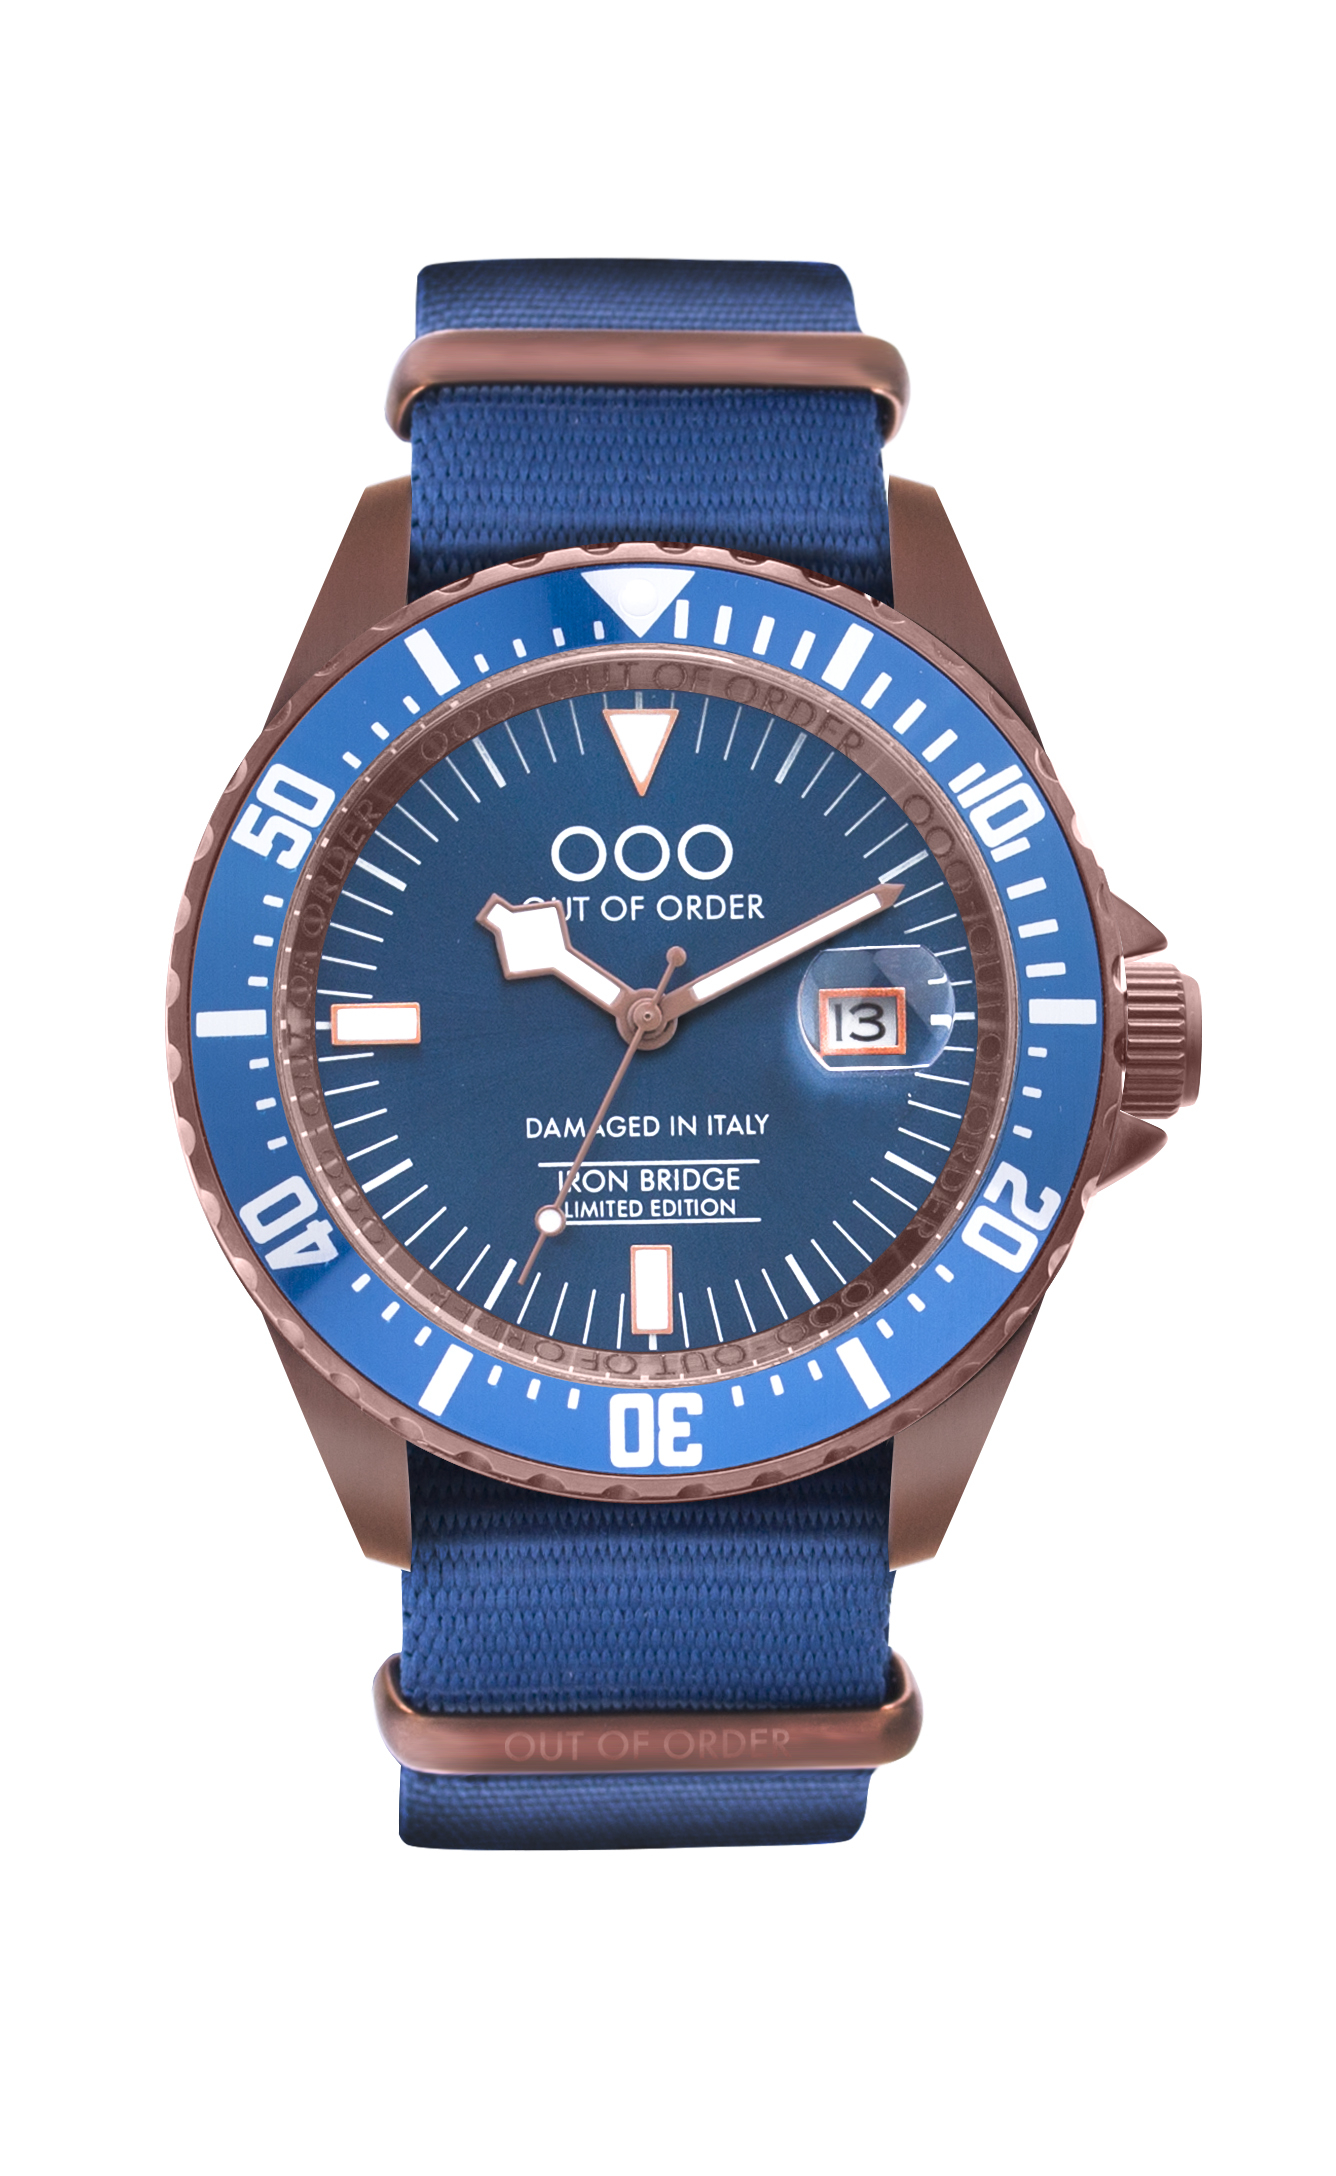 Limited Edition Out Of Order Watch with Blue Watch Band